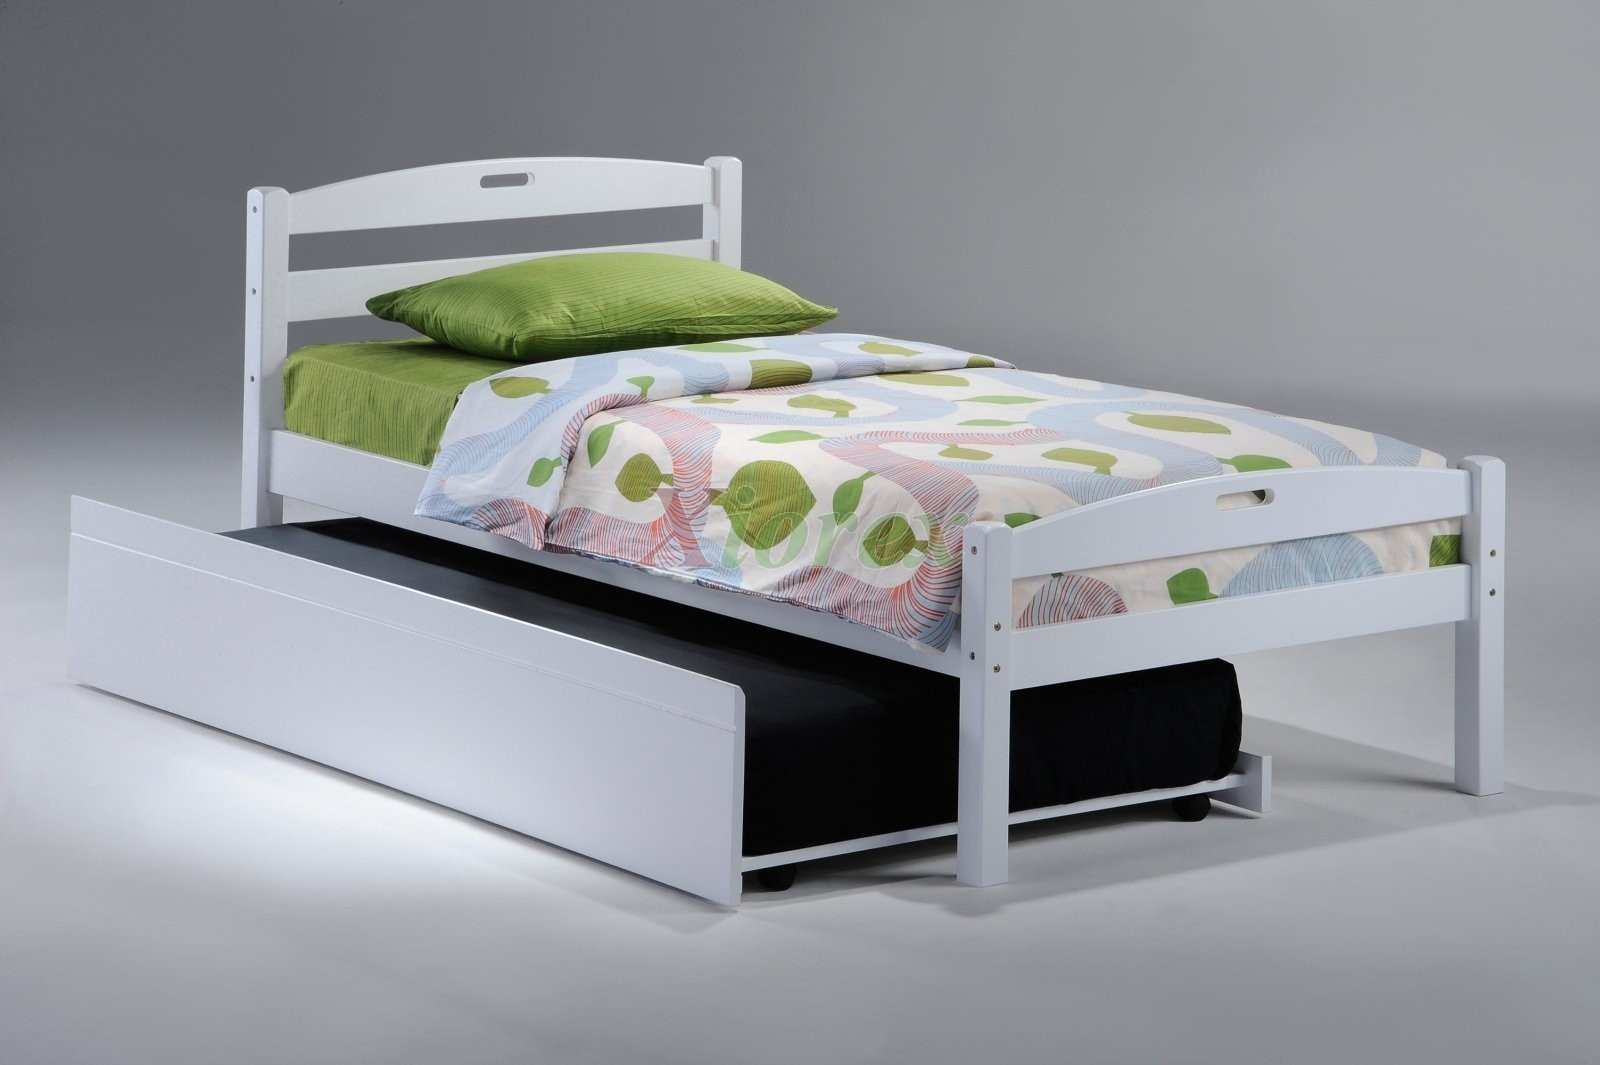 Zest Sesame Bed Sets For Children Night Day Sesame Children Bed Sets